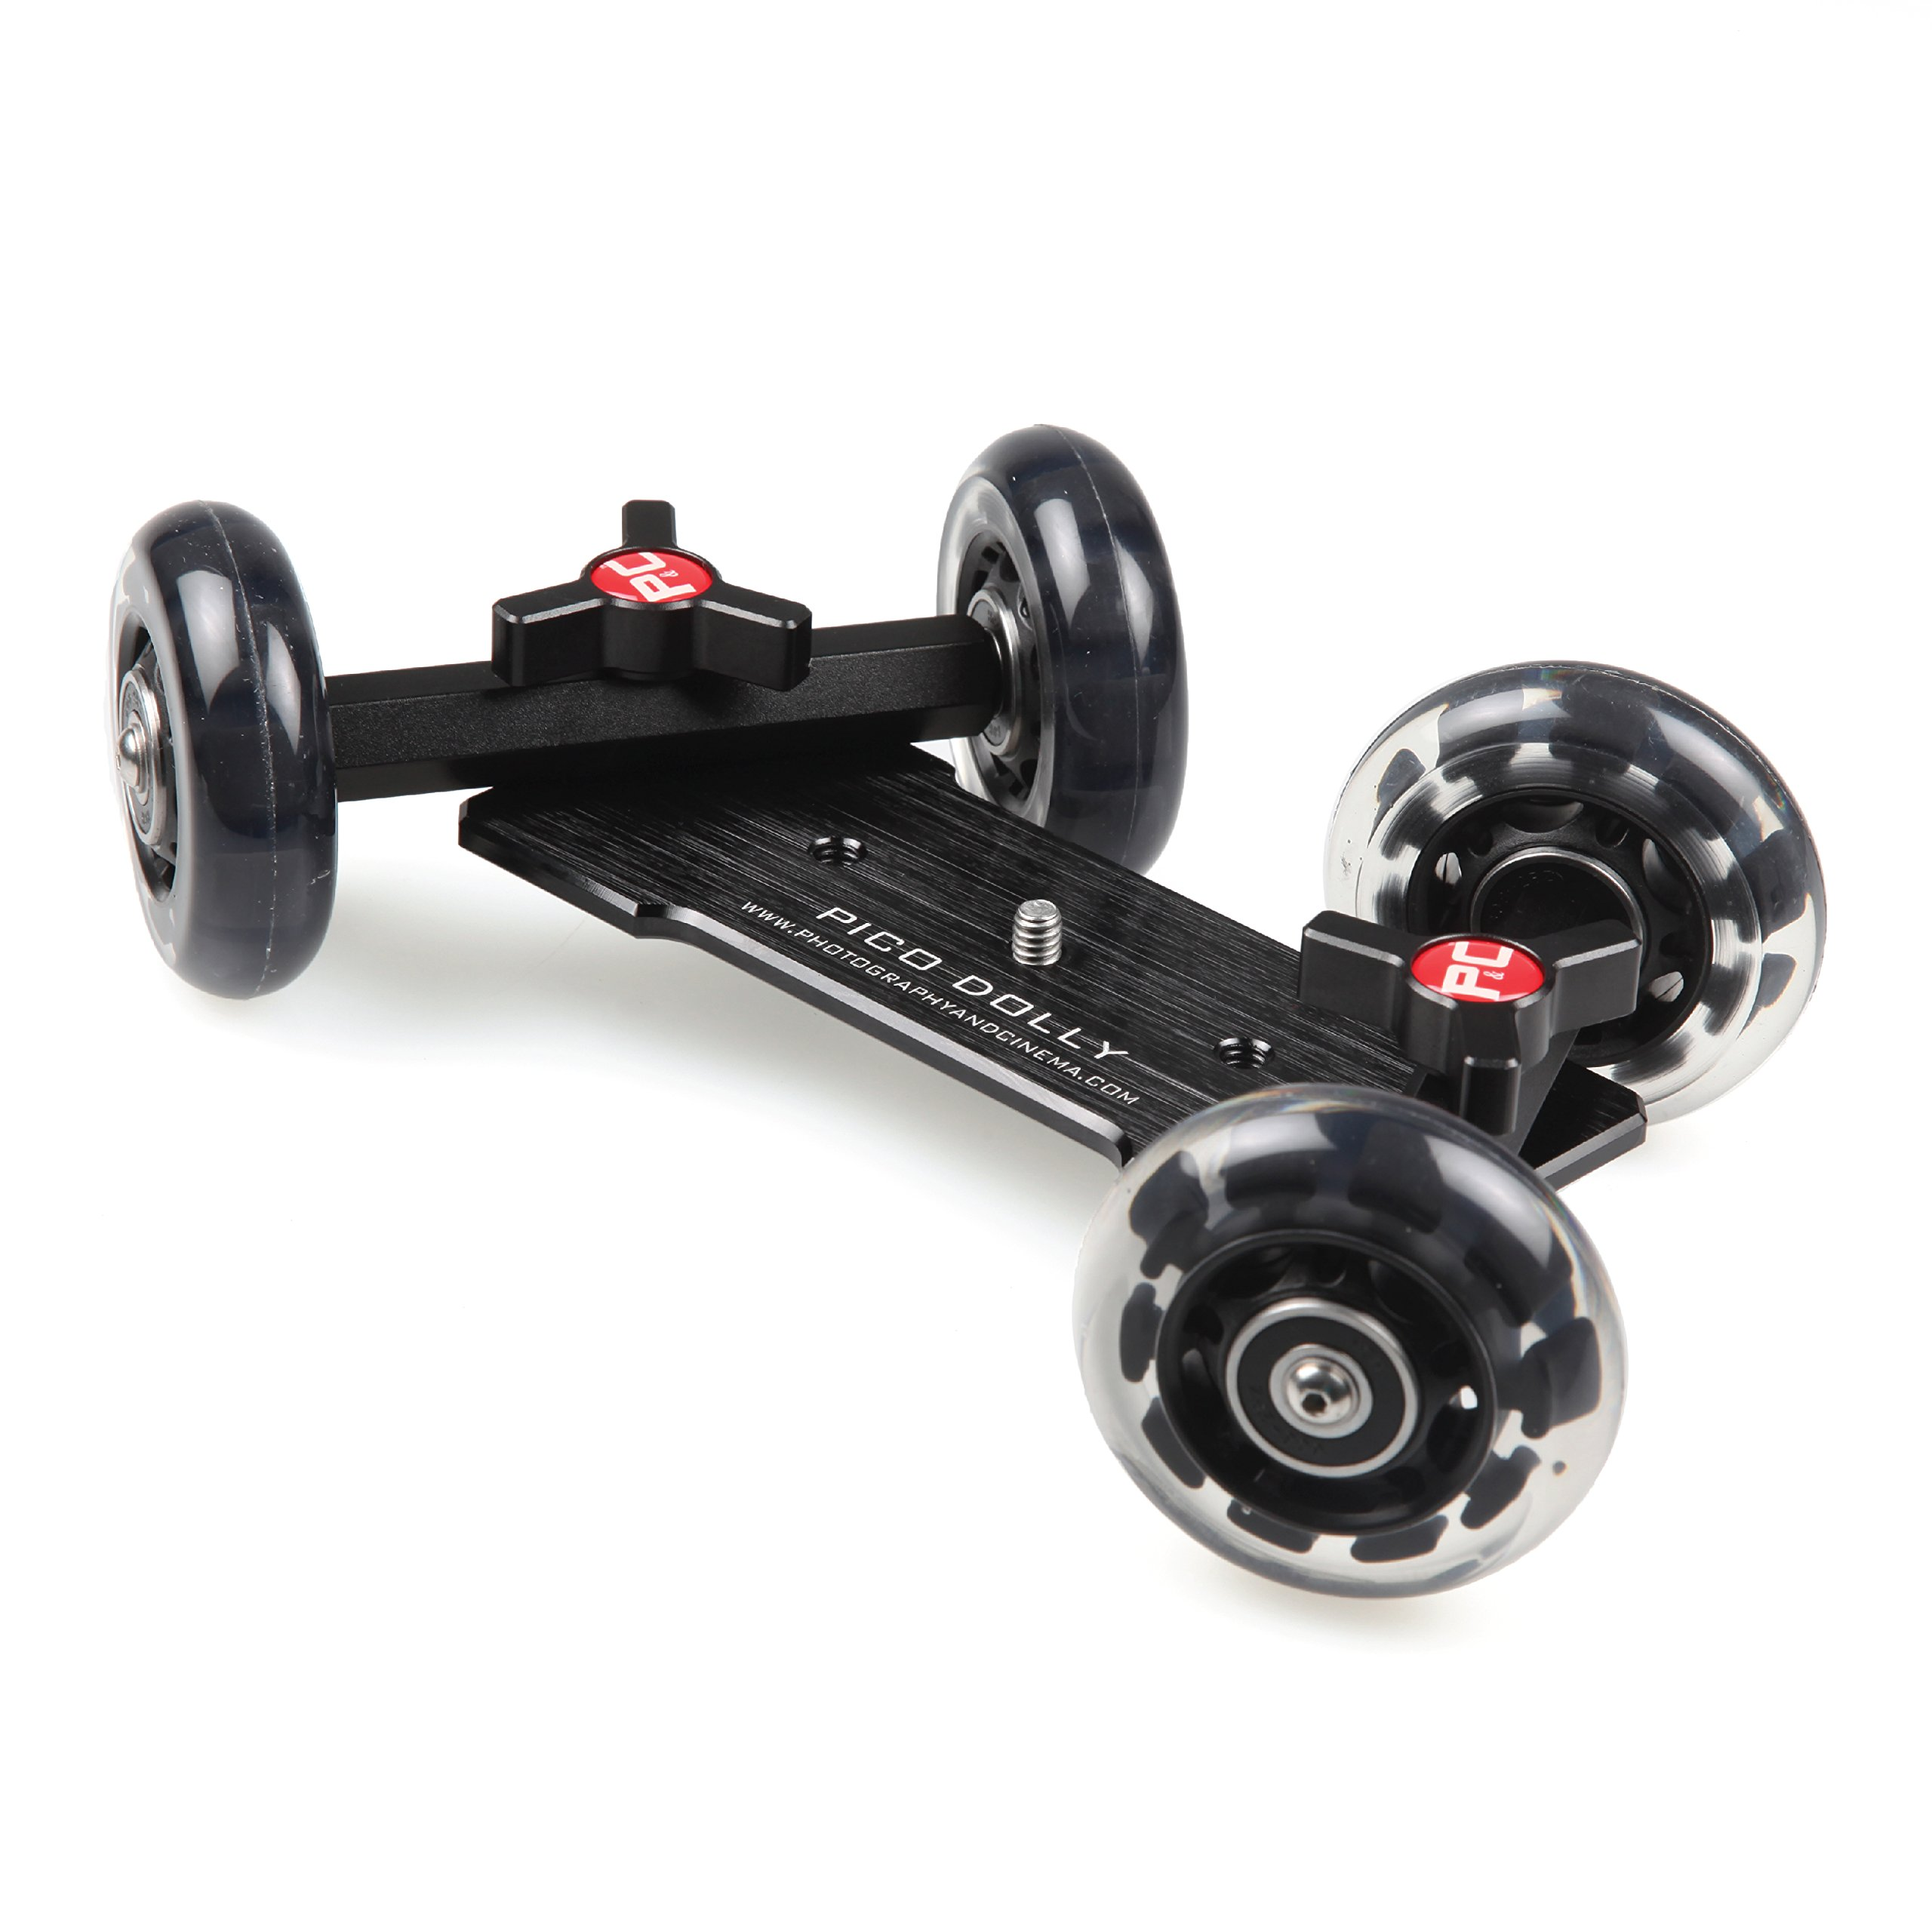 Photography & Cinema Pico Flex Dolly